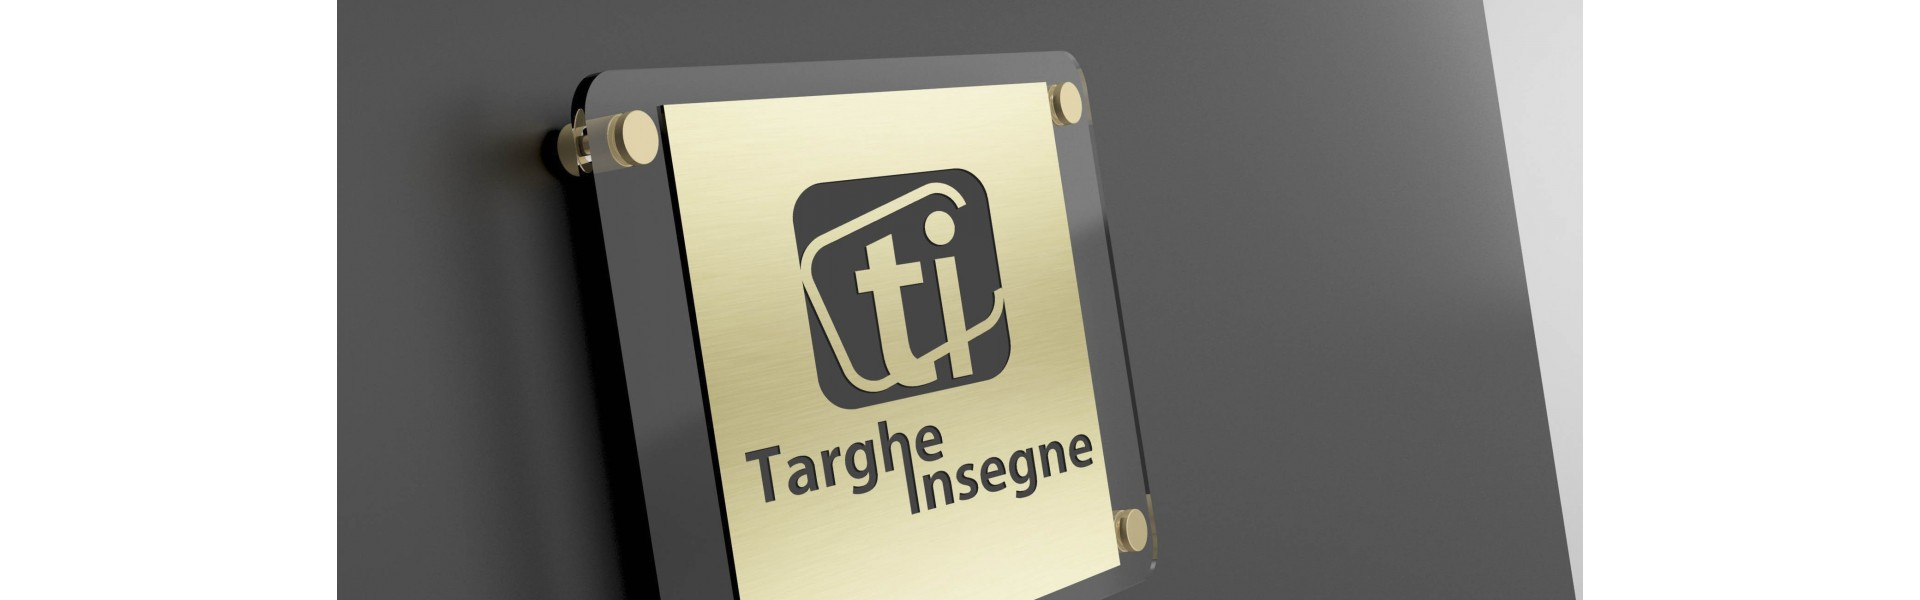 TARGHE PROFESSIONALI IN ABS INCISE